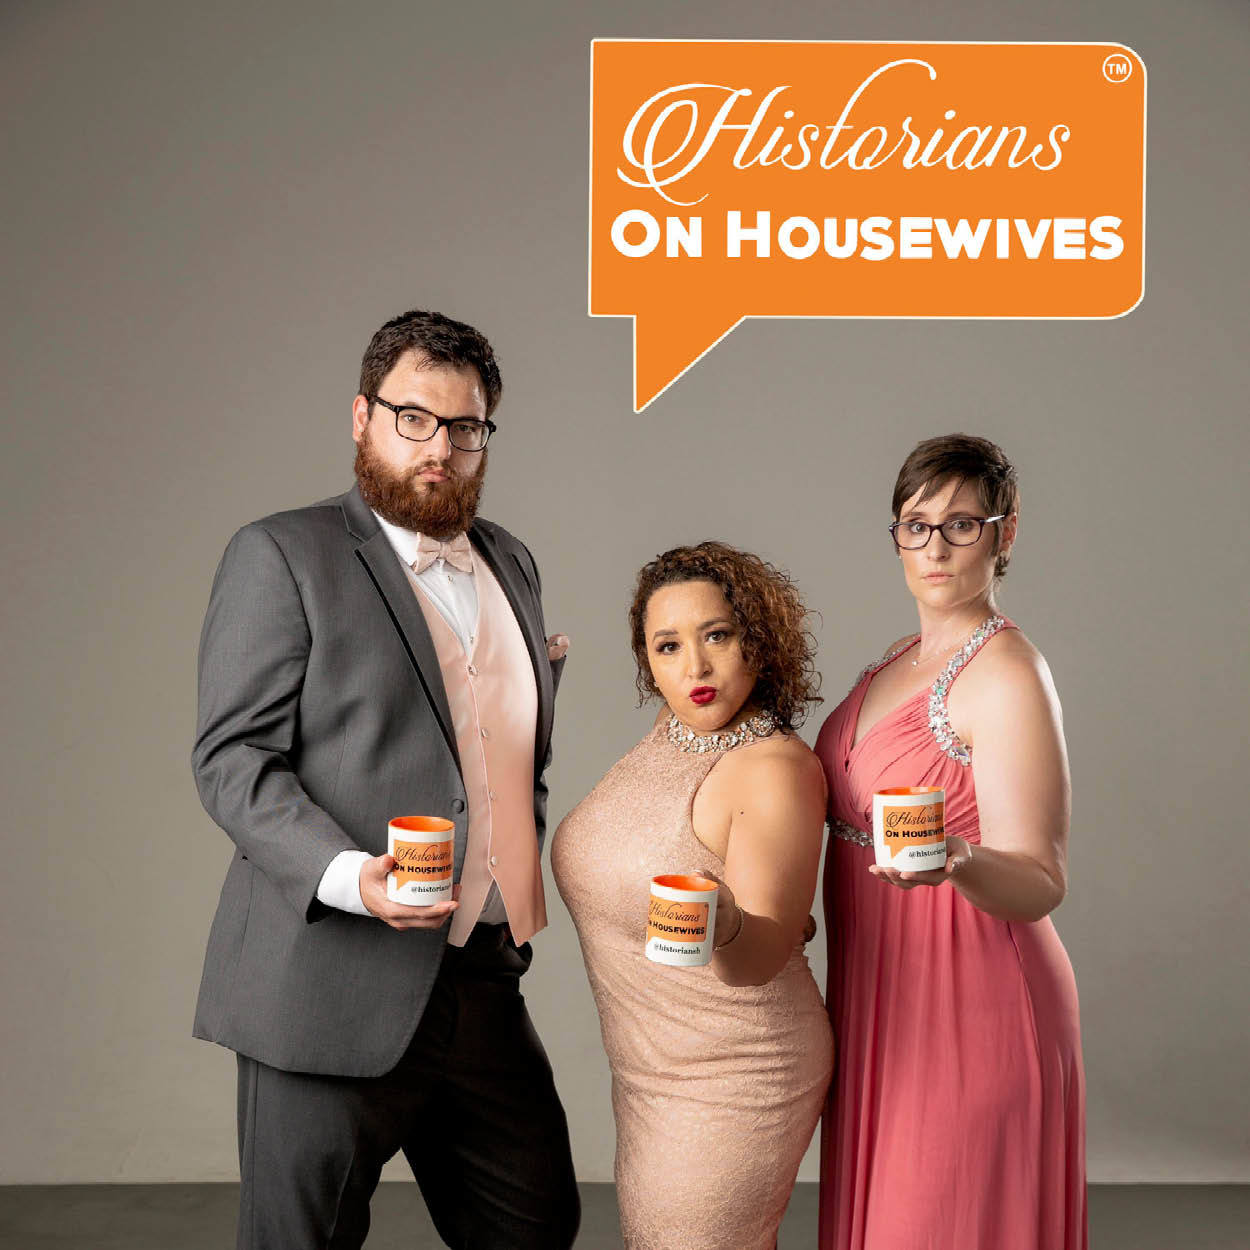 History on Housewives logo on top of a photo of the hosts all wearing formal wear